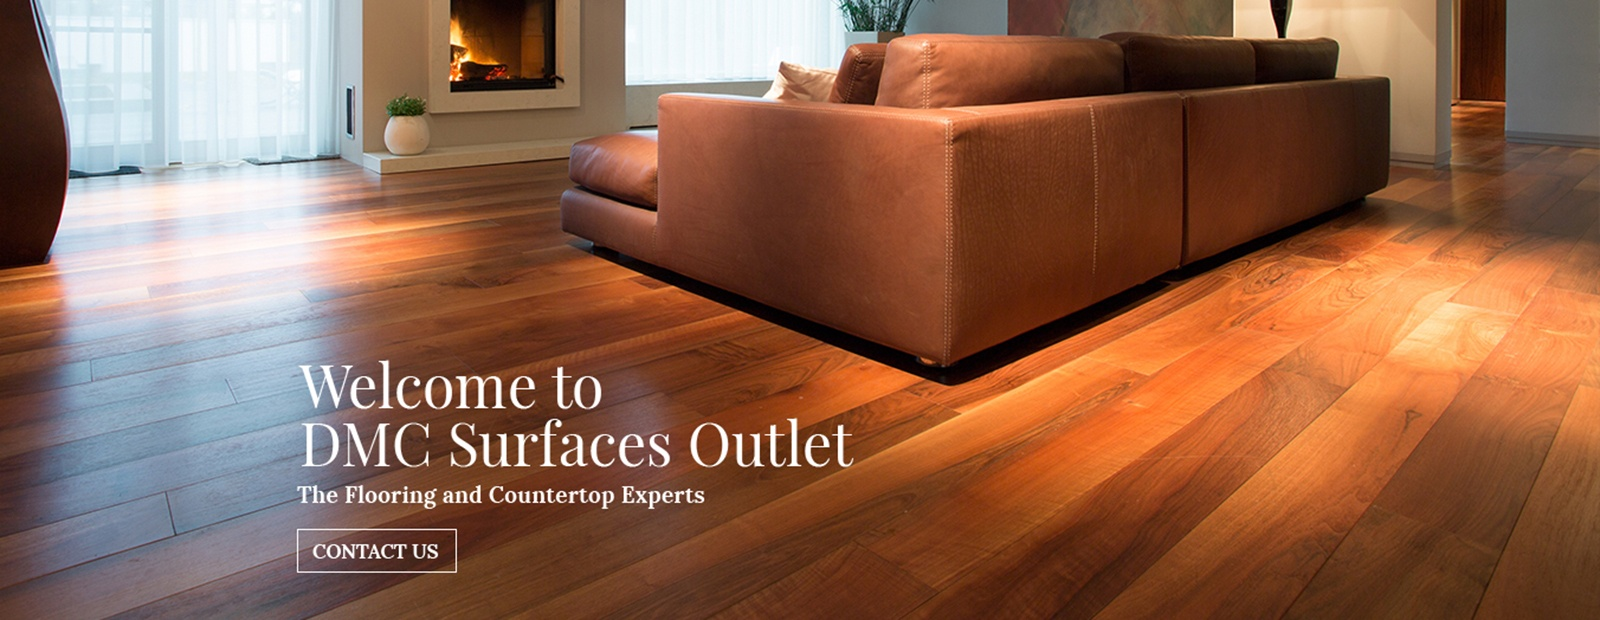 Welcome to DMC Surfaces Outlet - The Flooring and Countertop Experts